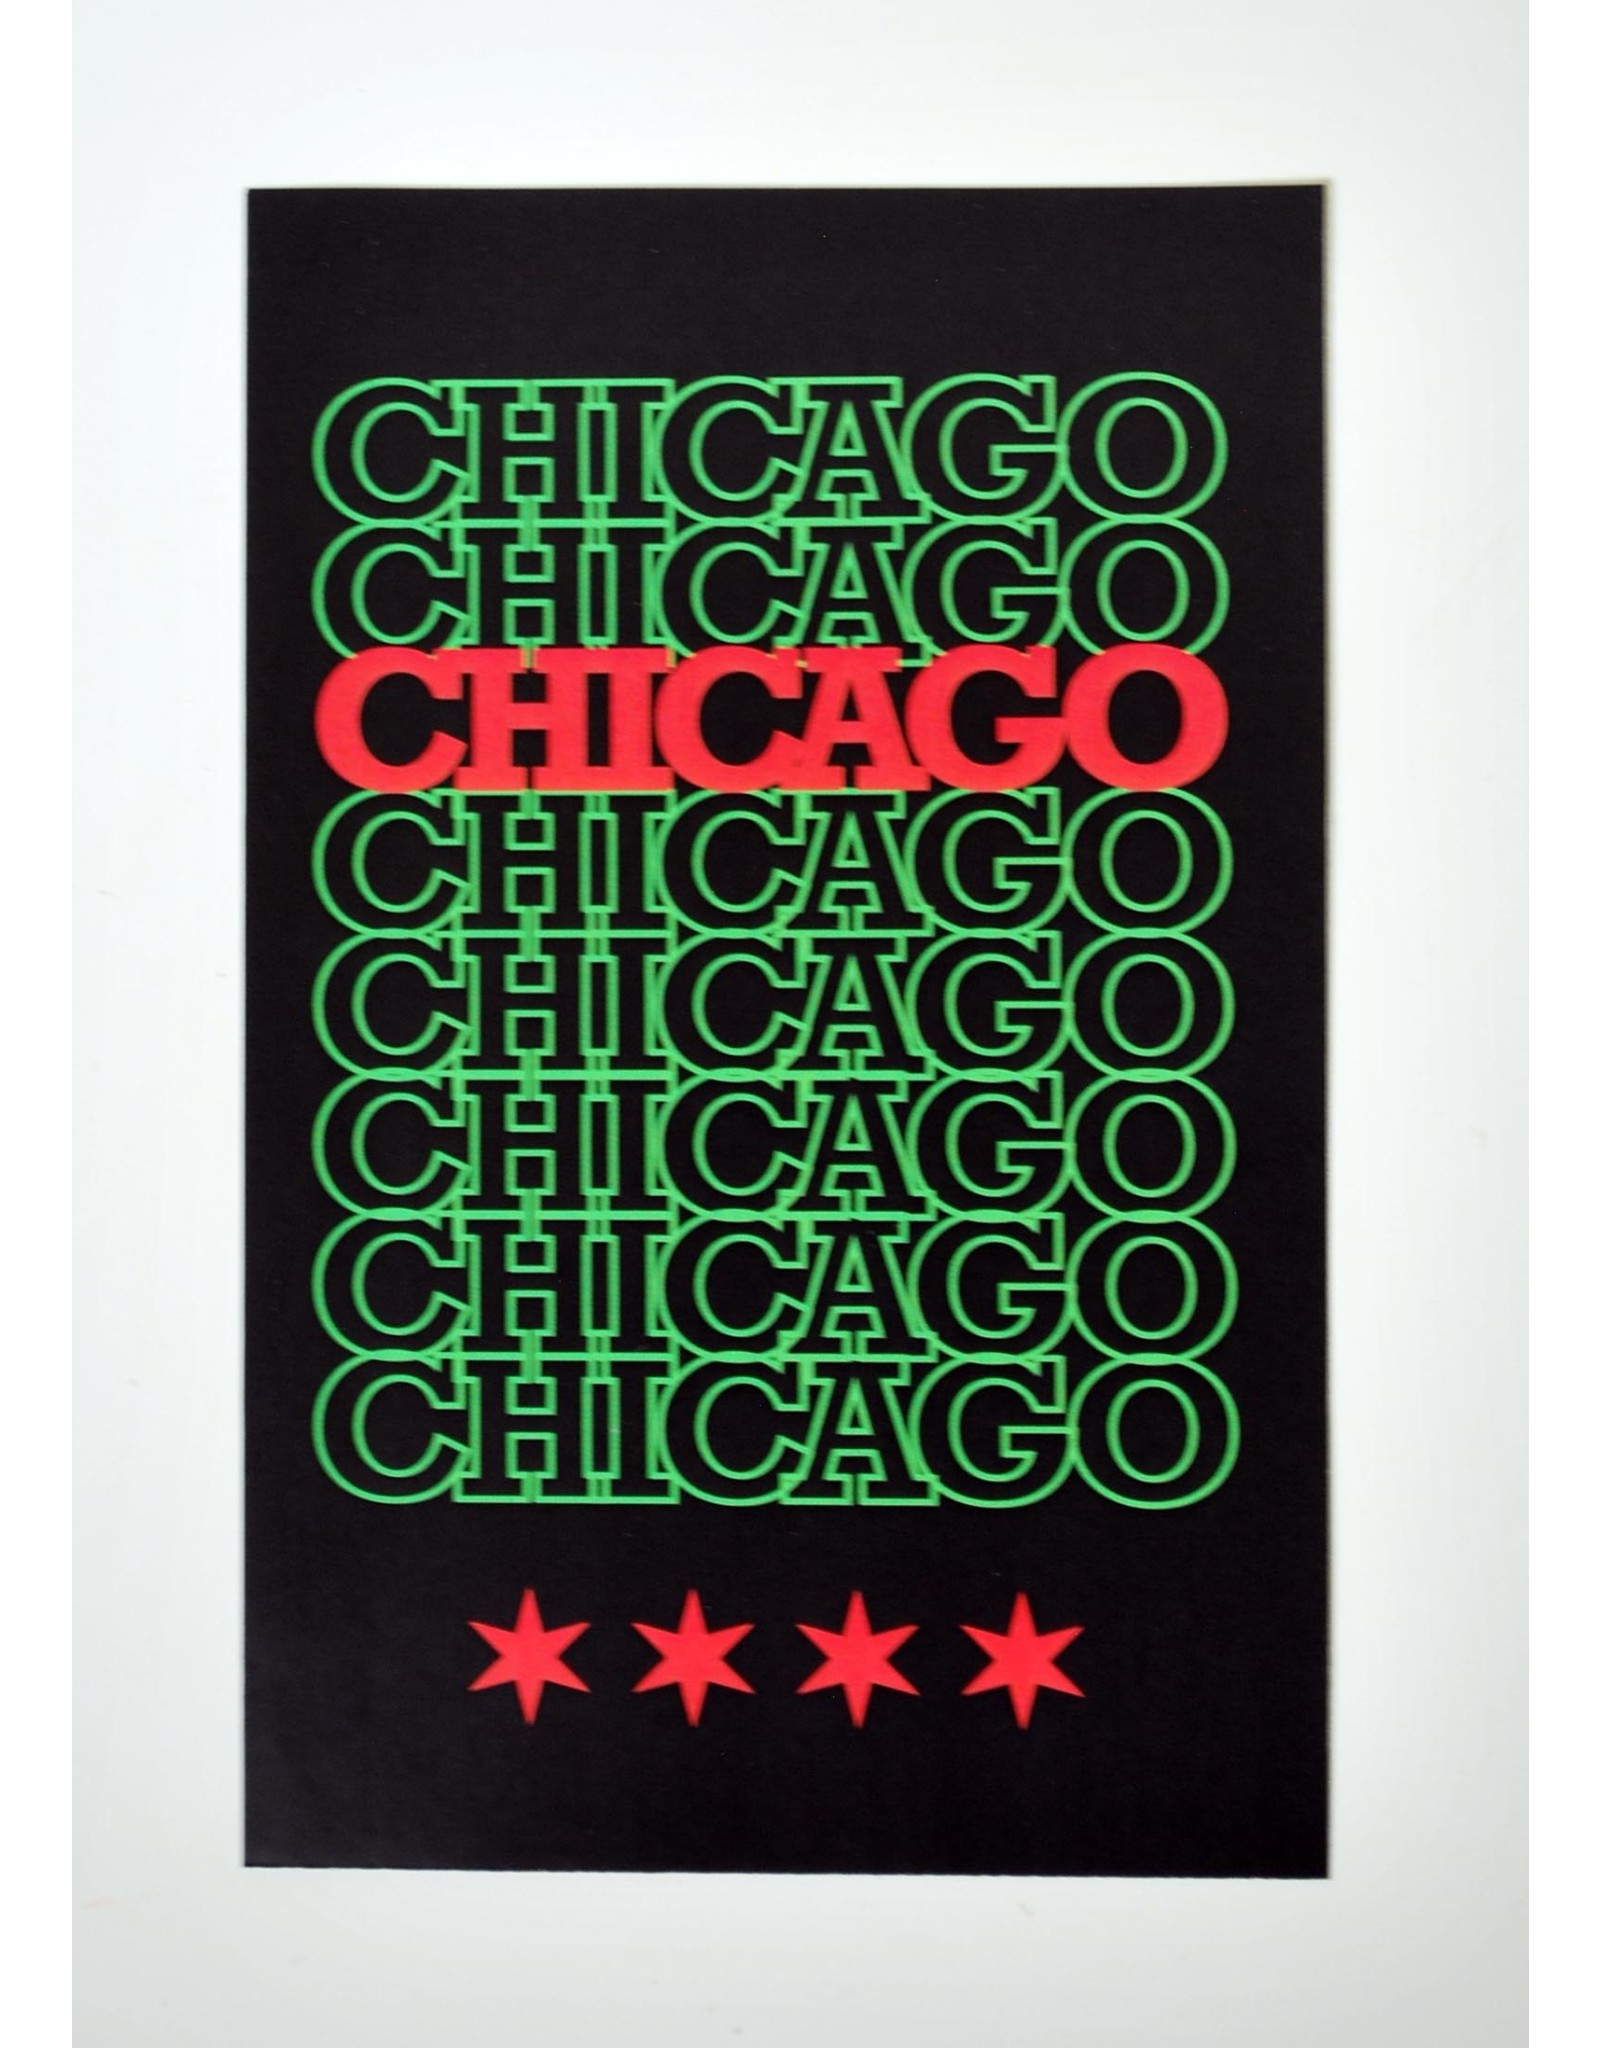 David Knight Corvus Press: Chicago Pan Recyclable Sticker by David Knight